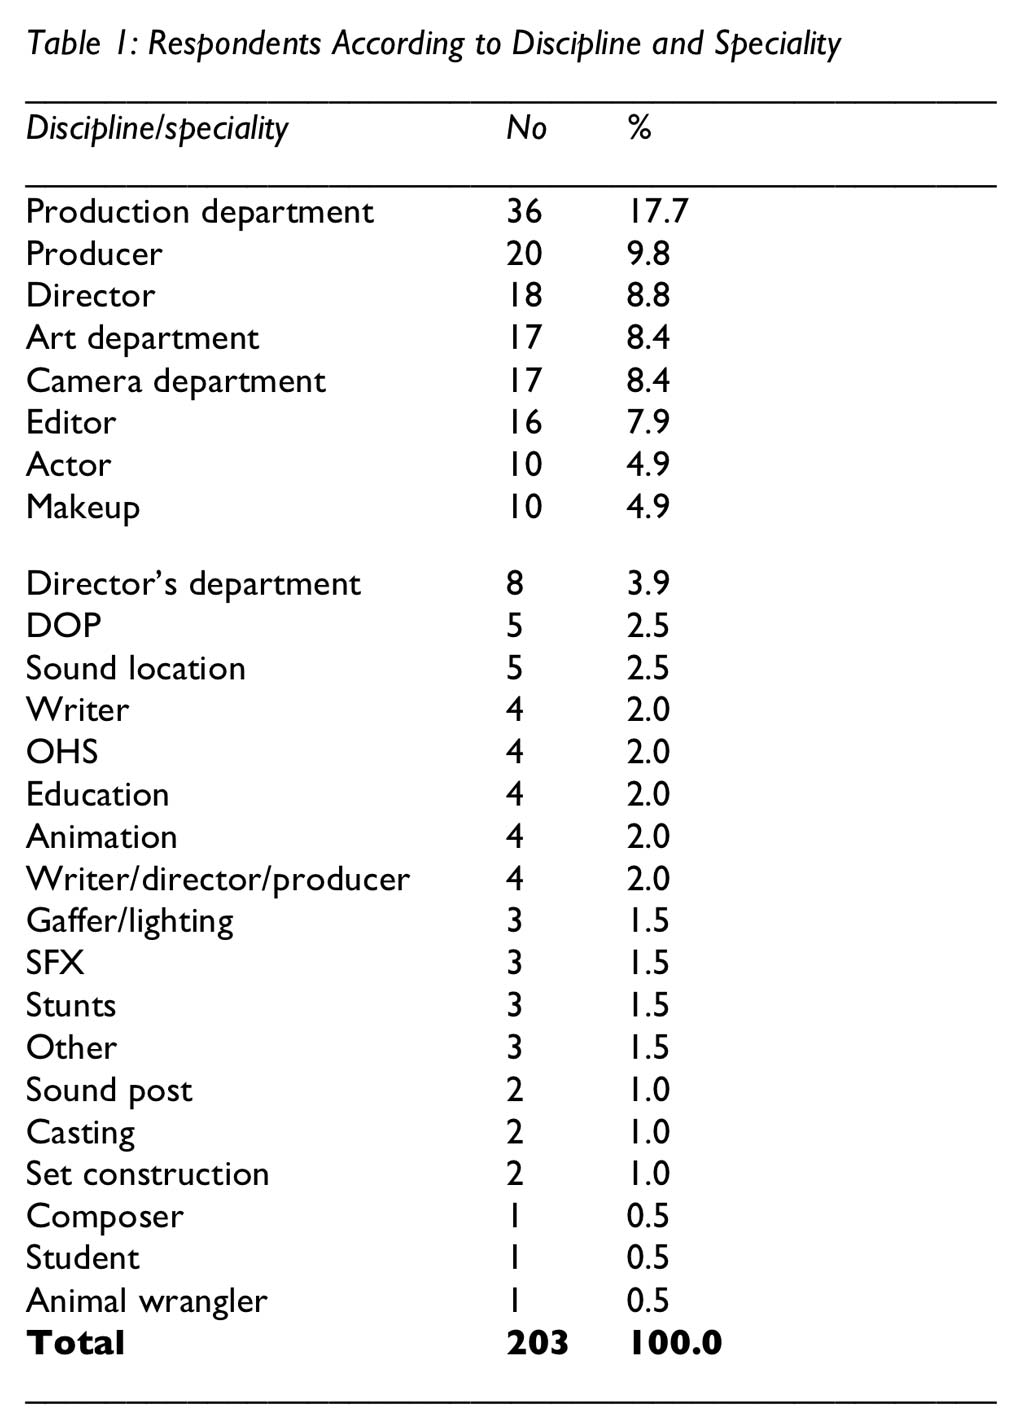 Table 1: Respondents According to Discipline and Speciality